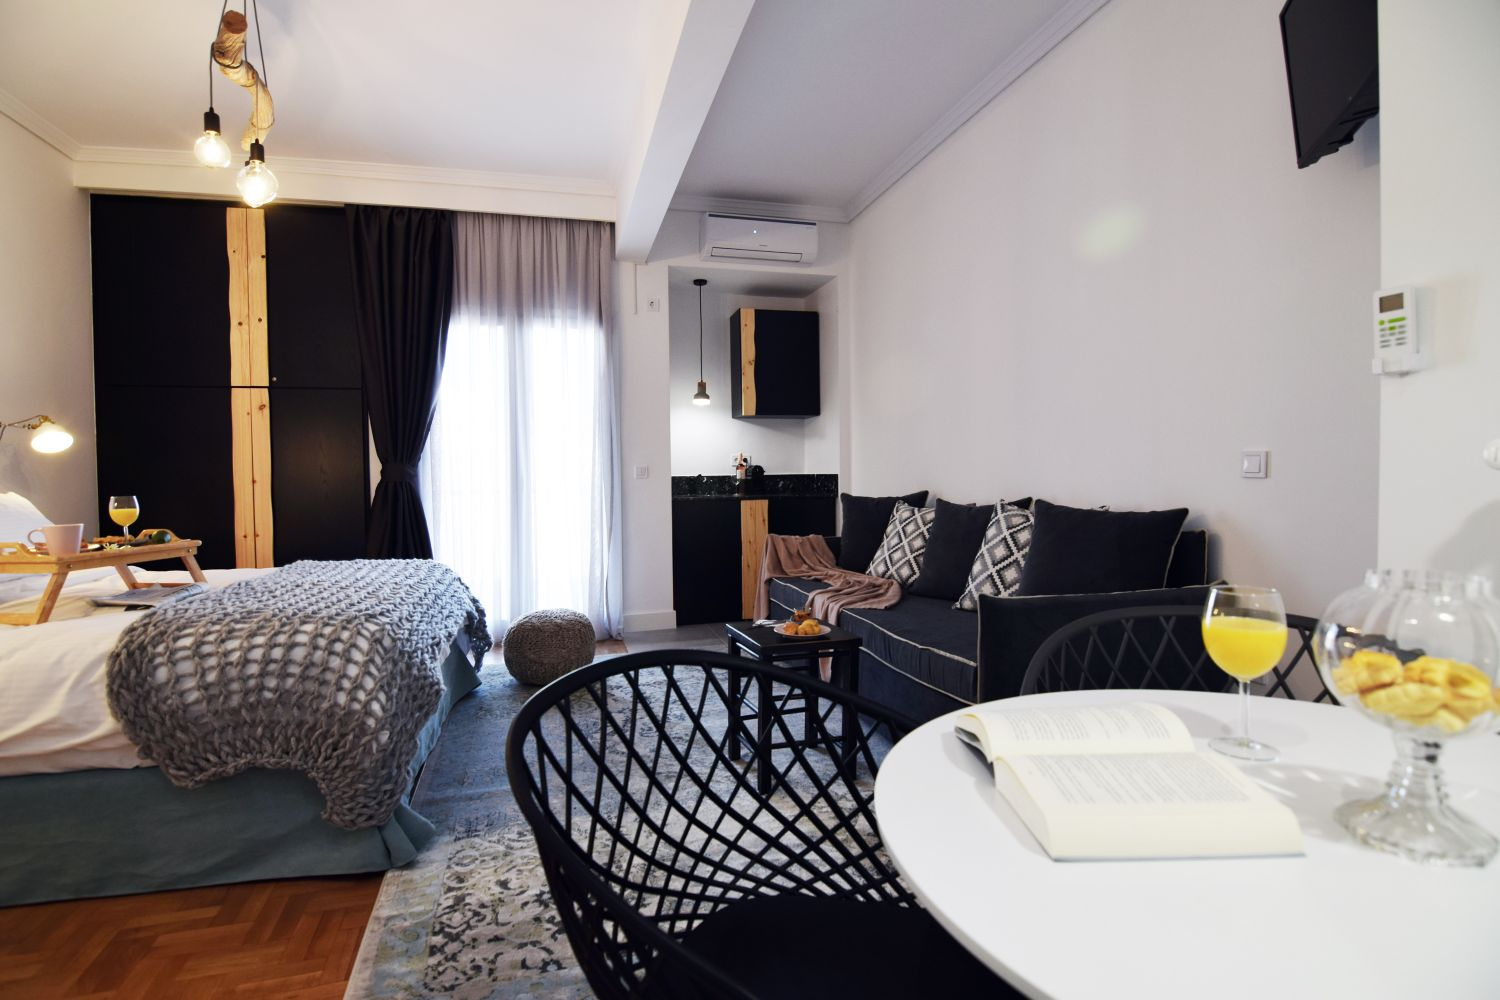 803 Living area with 1 double bed and 1 sofa bed